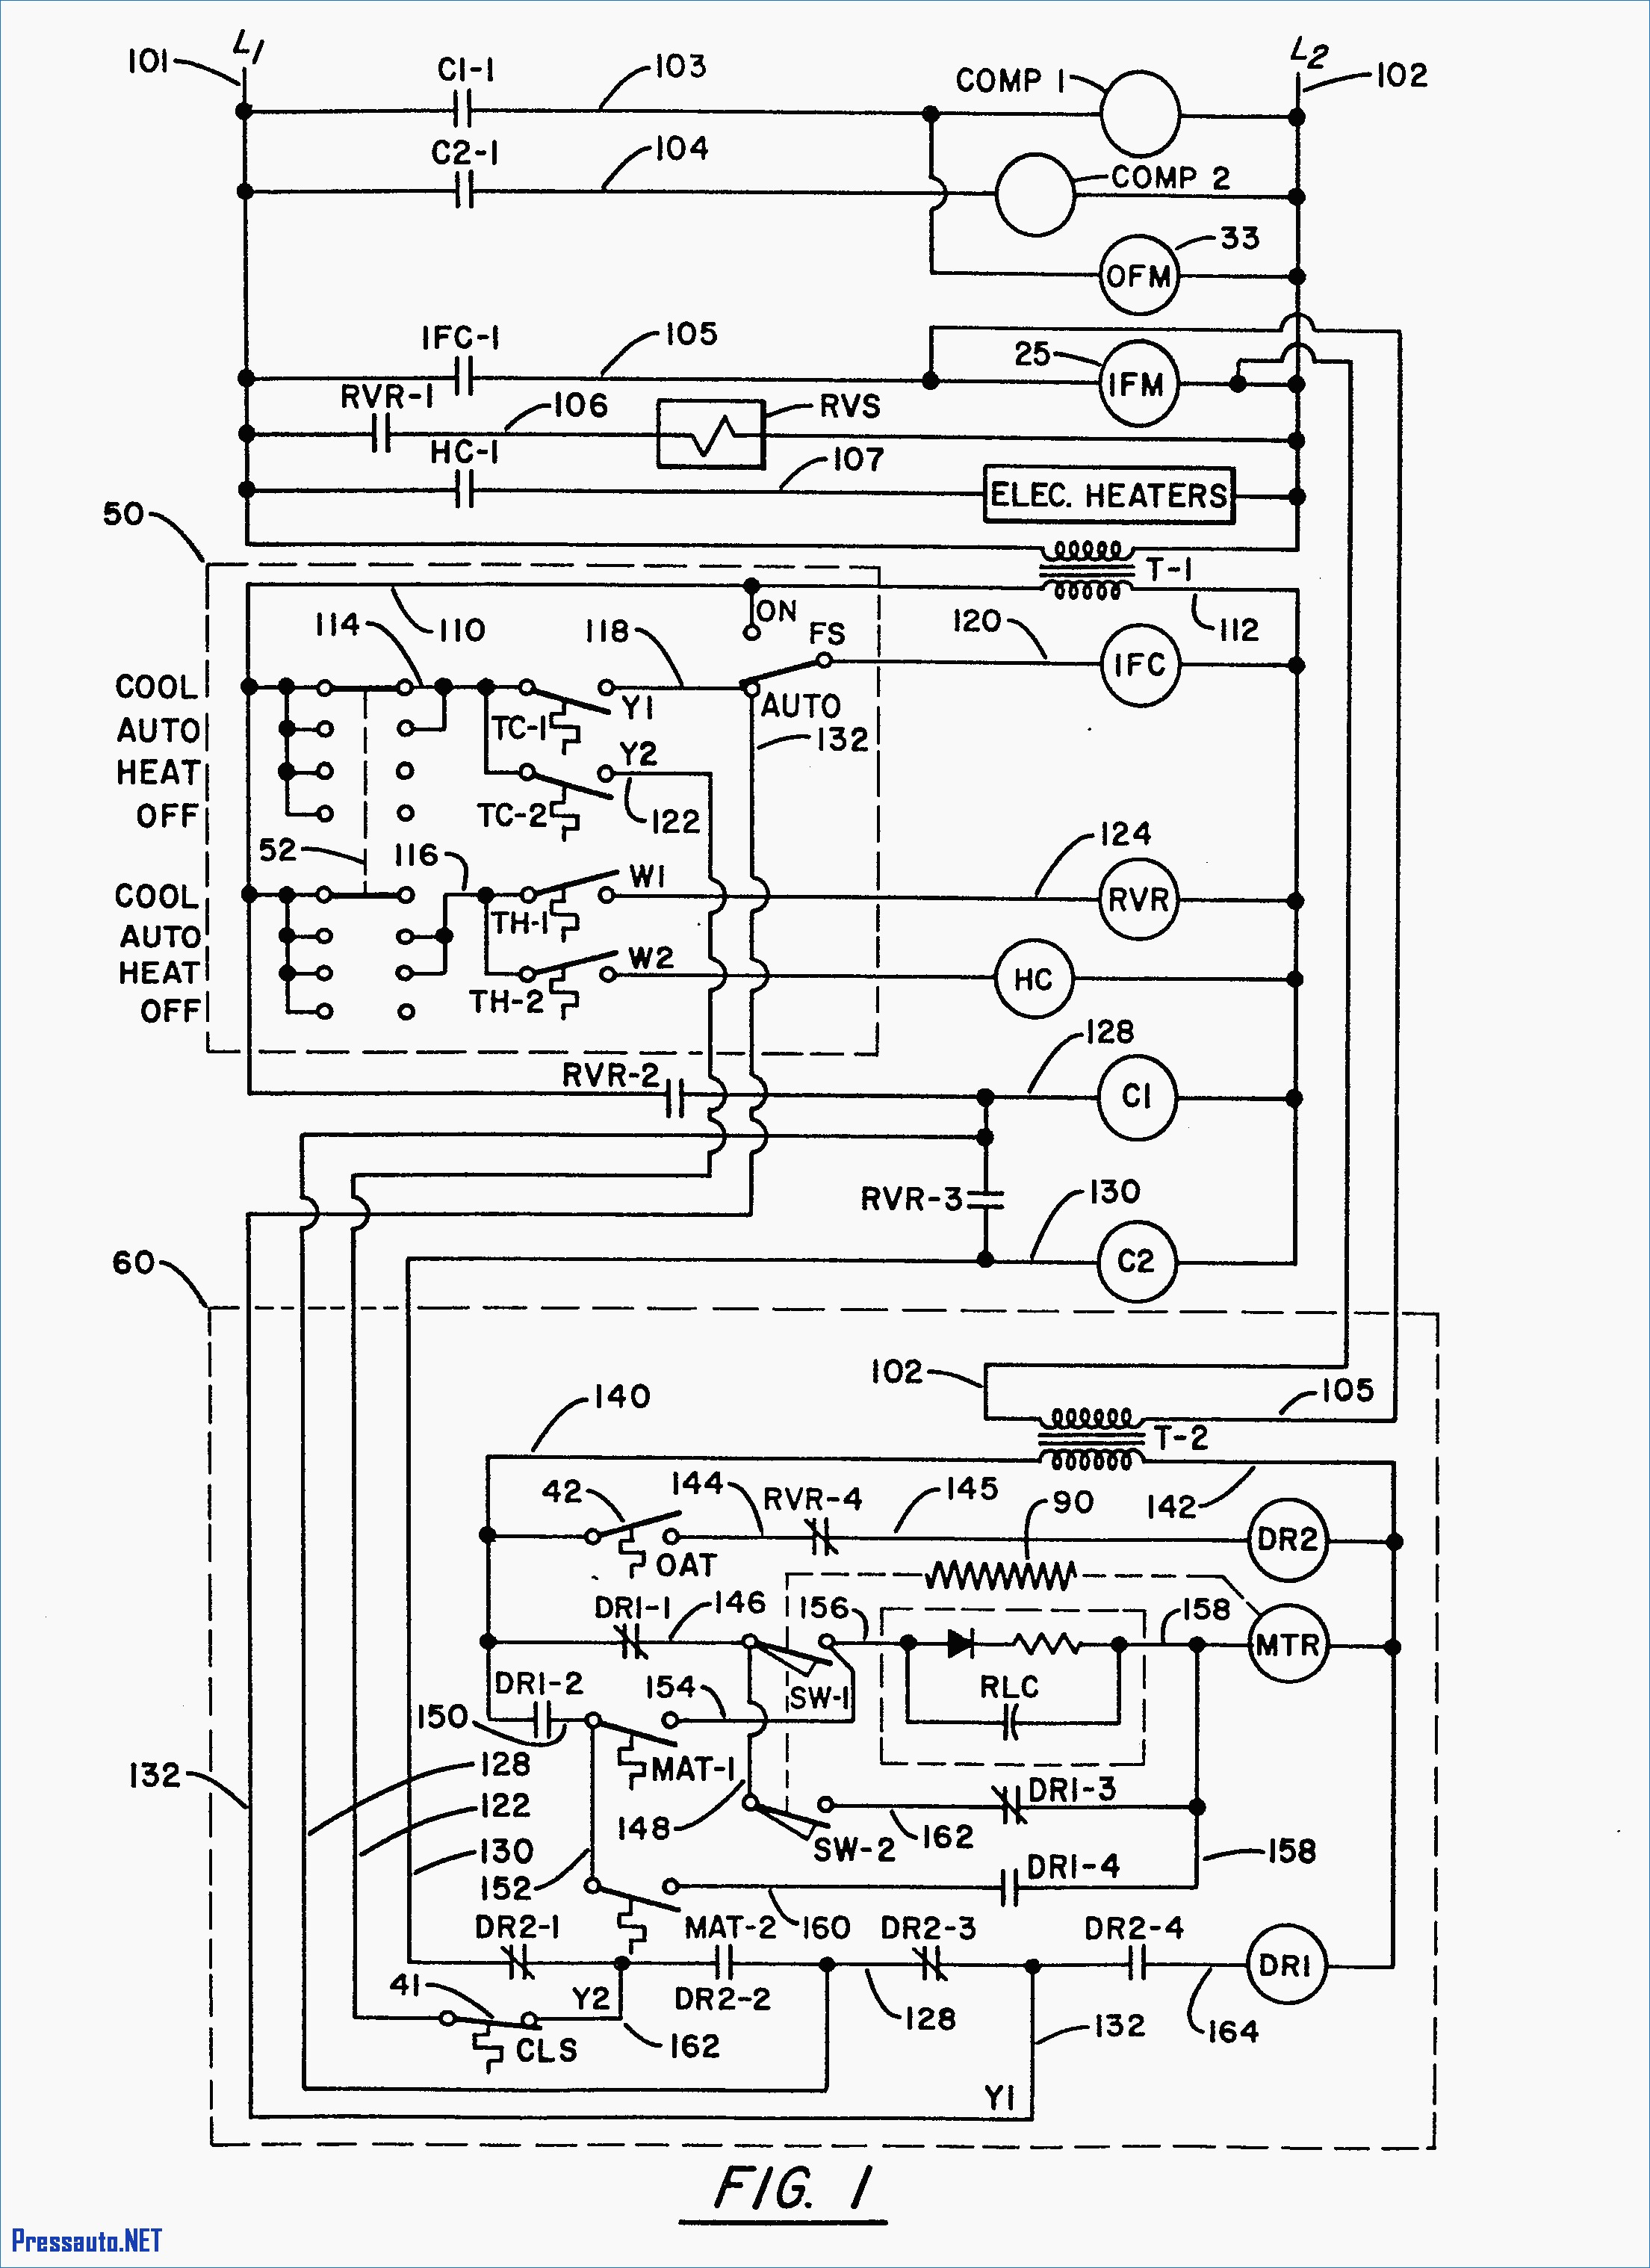 trane xl1200 heat pump wiring diagram combination switch outet image